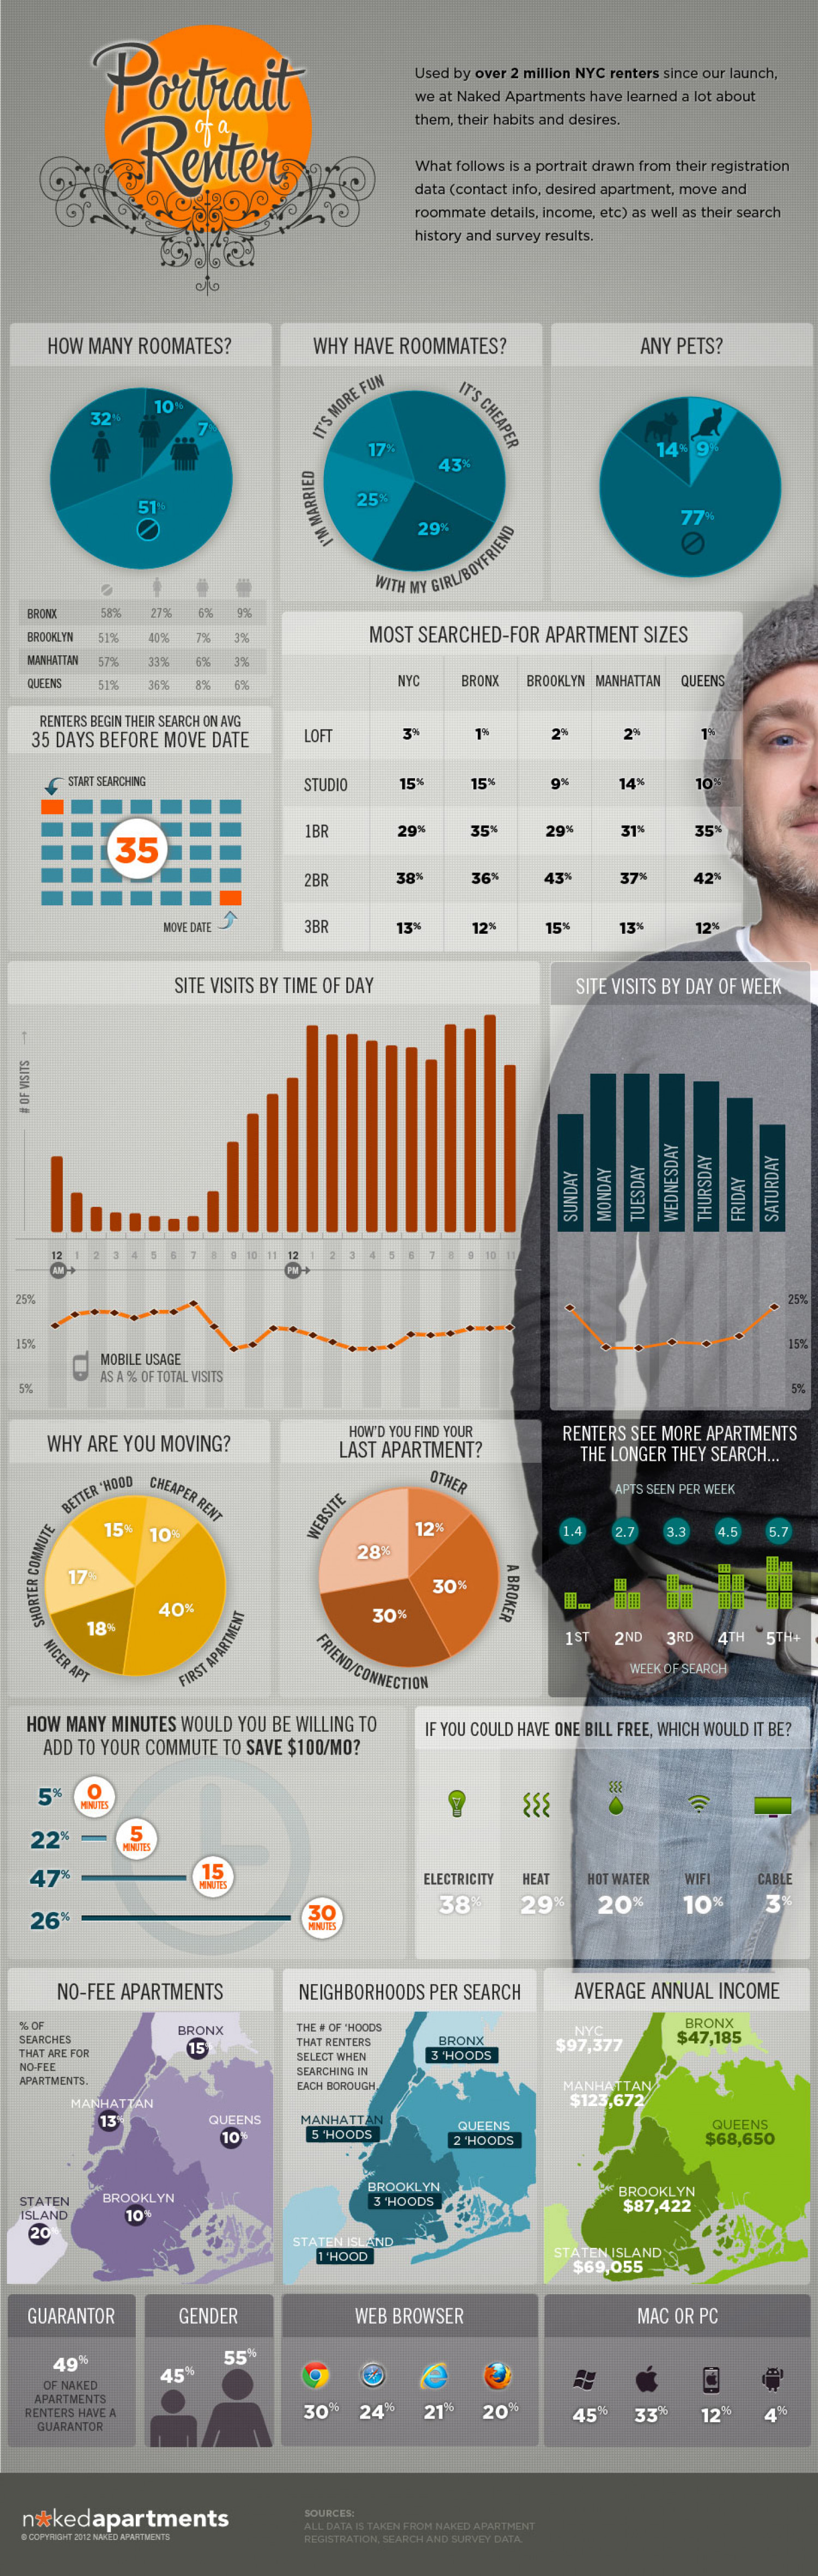 Portrait of a Renter Infographic